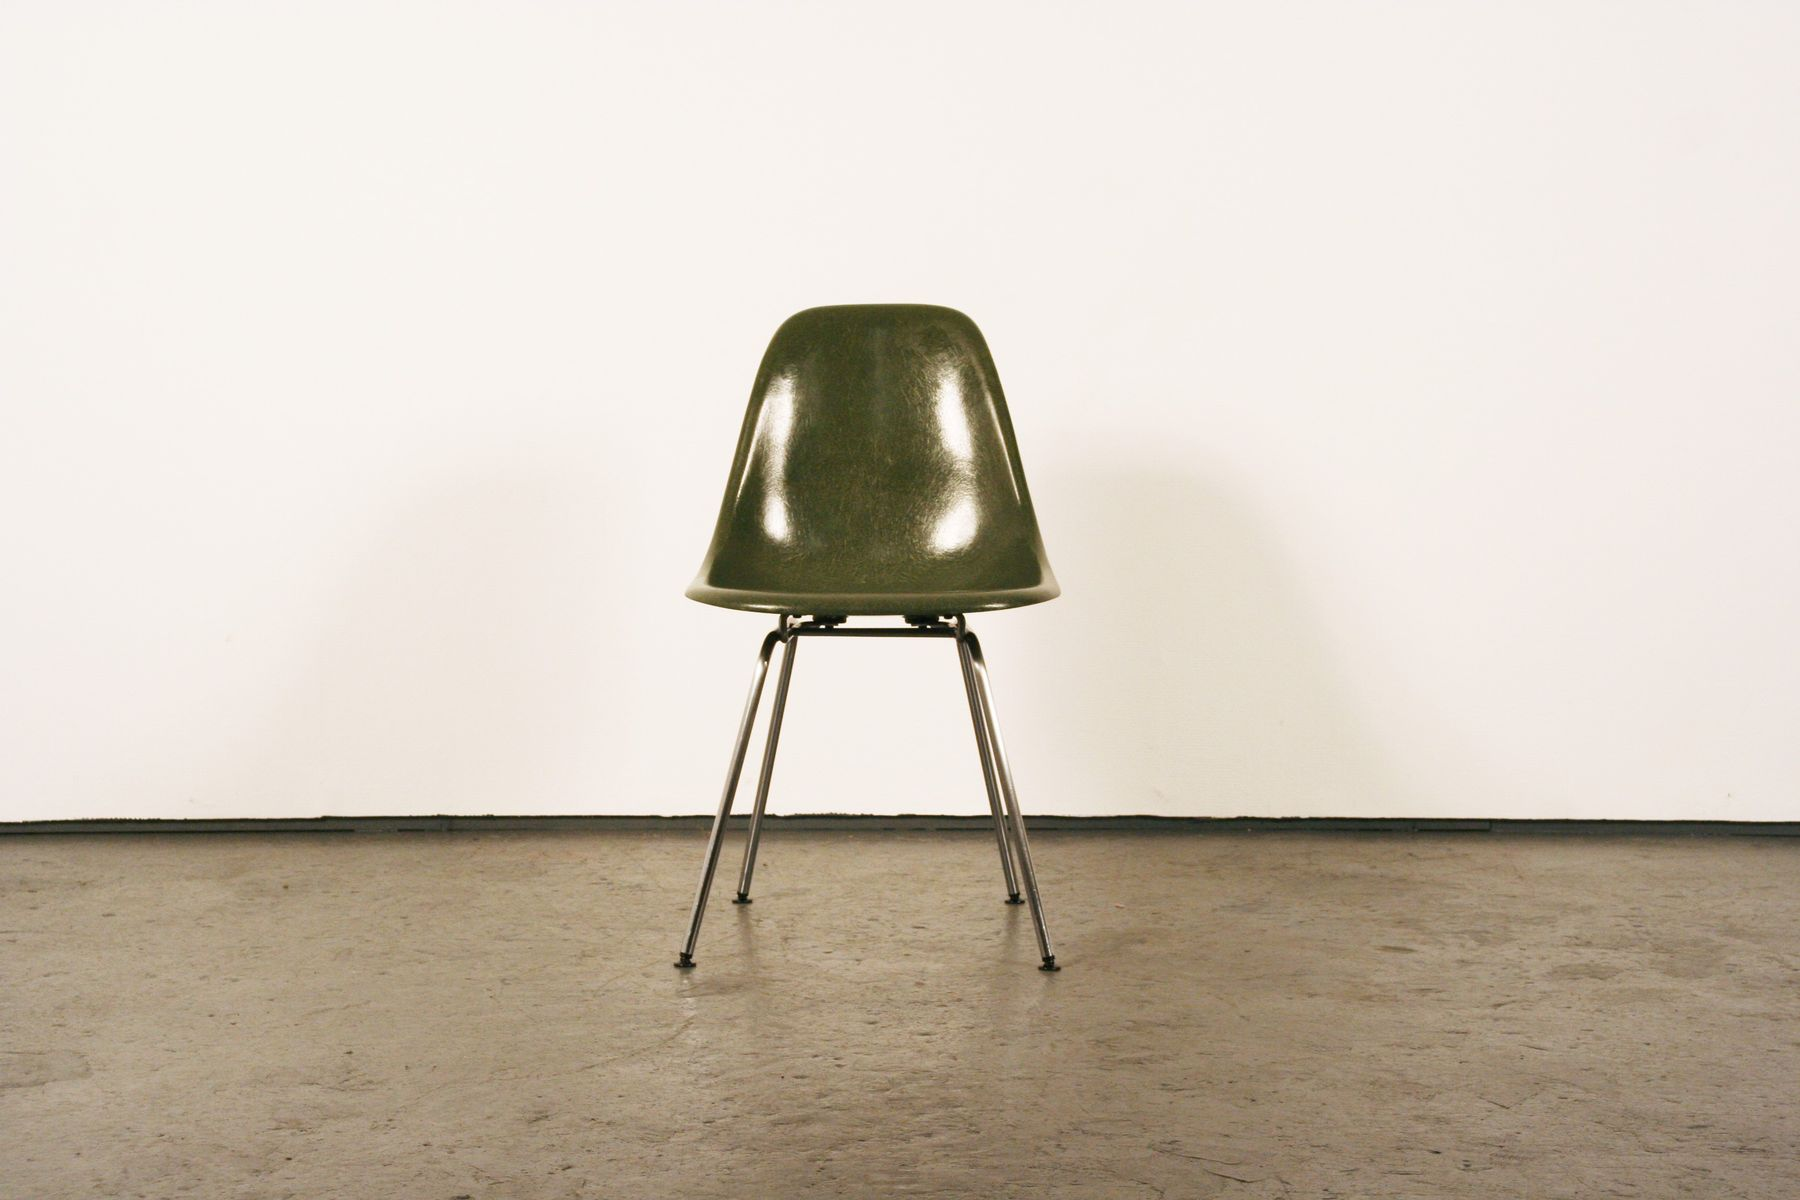 Mid Century Fiberglass DSX Chairs By Charles U0026 Ray Eames For Herman Miller,  Set Of 4